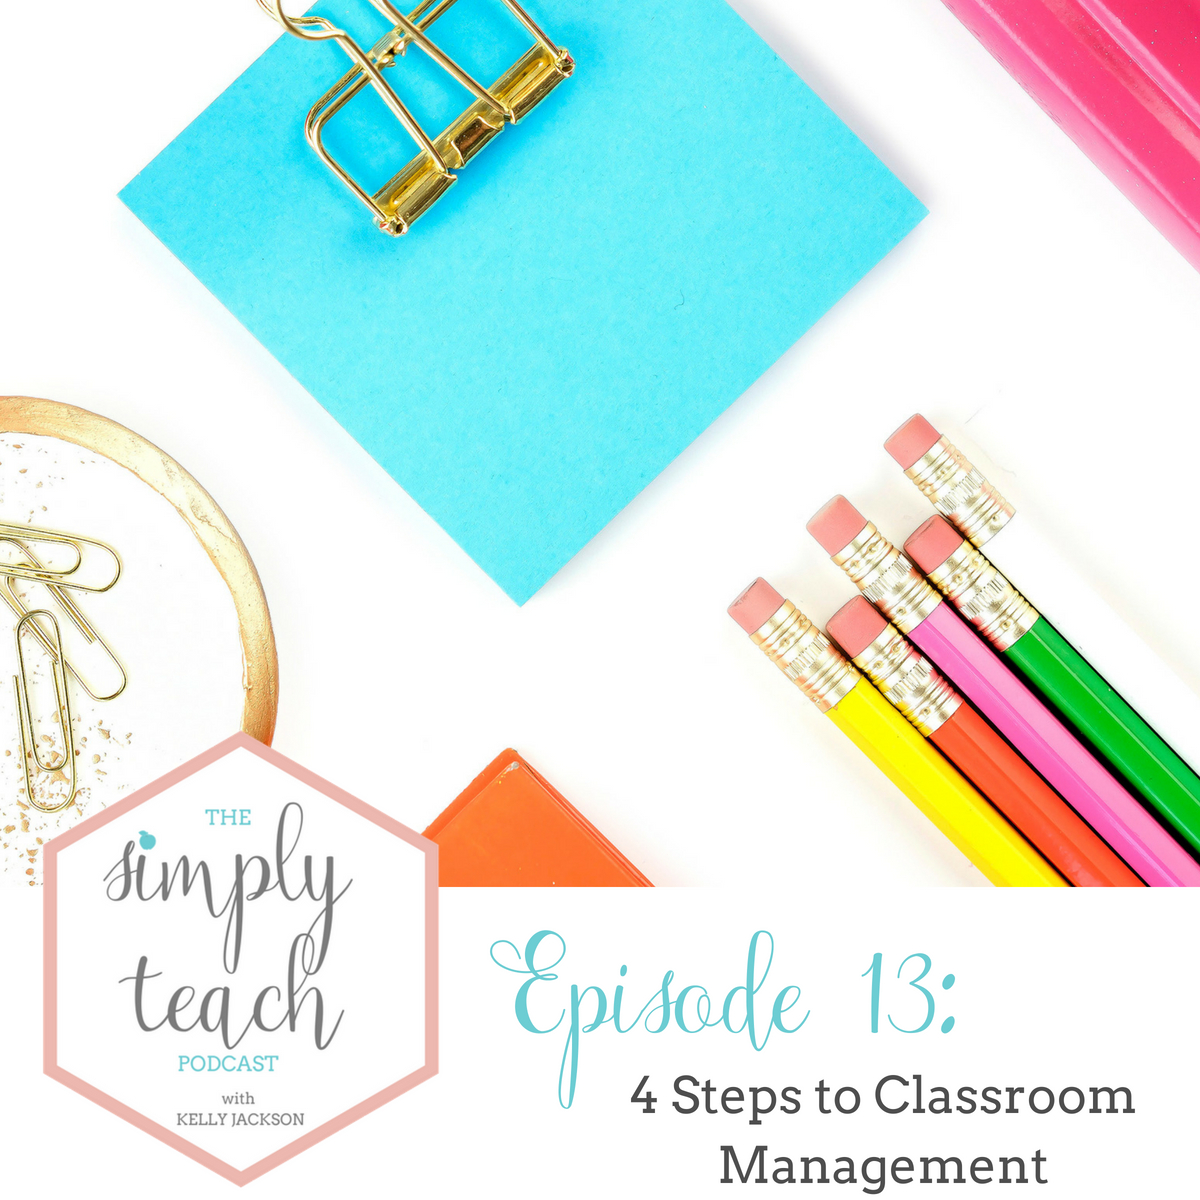 Simply Teach- a podcast for teachers, by teachers. In this episode we talk about the importance of classroom management plans and four ways you can ensure you are prepared for the school year.